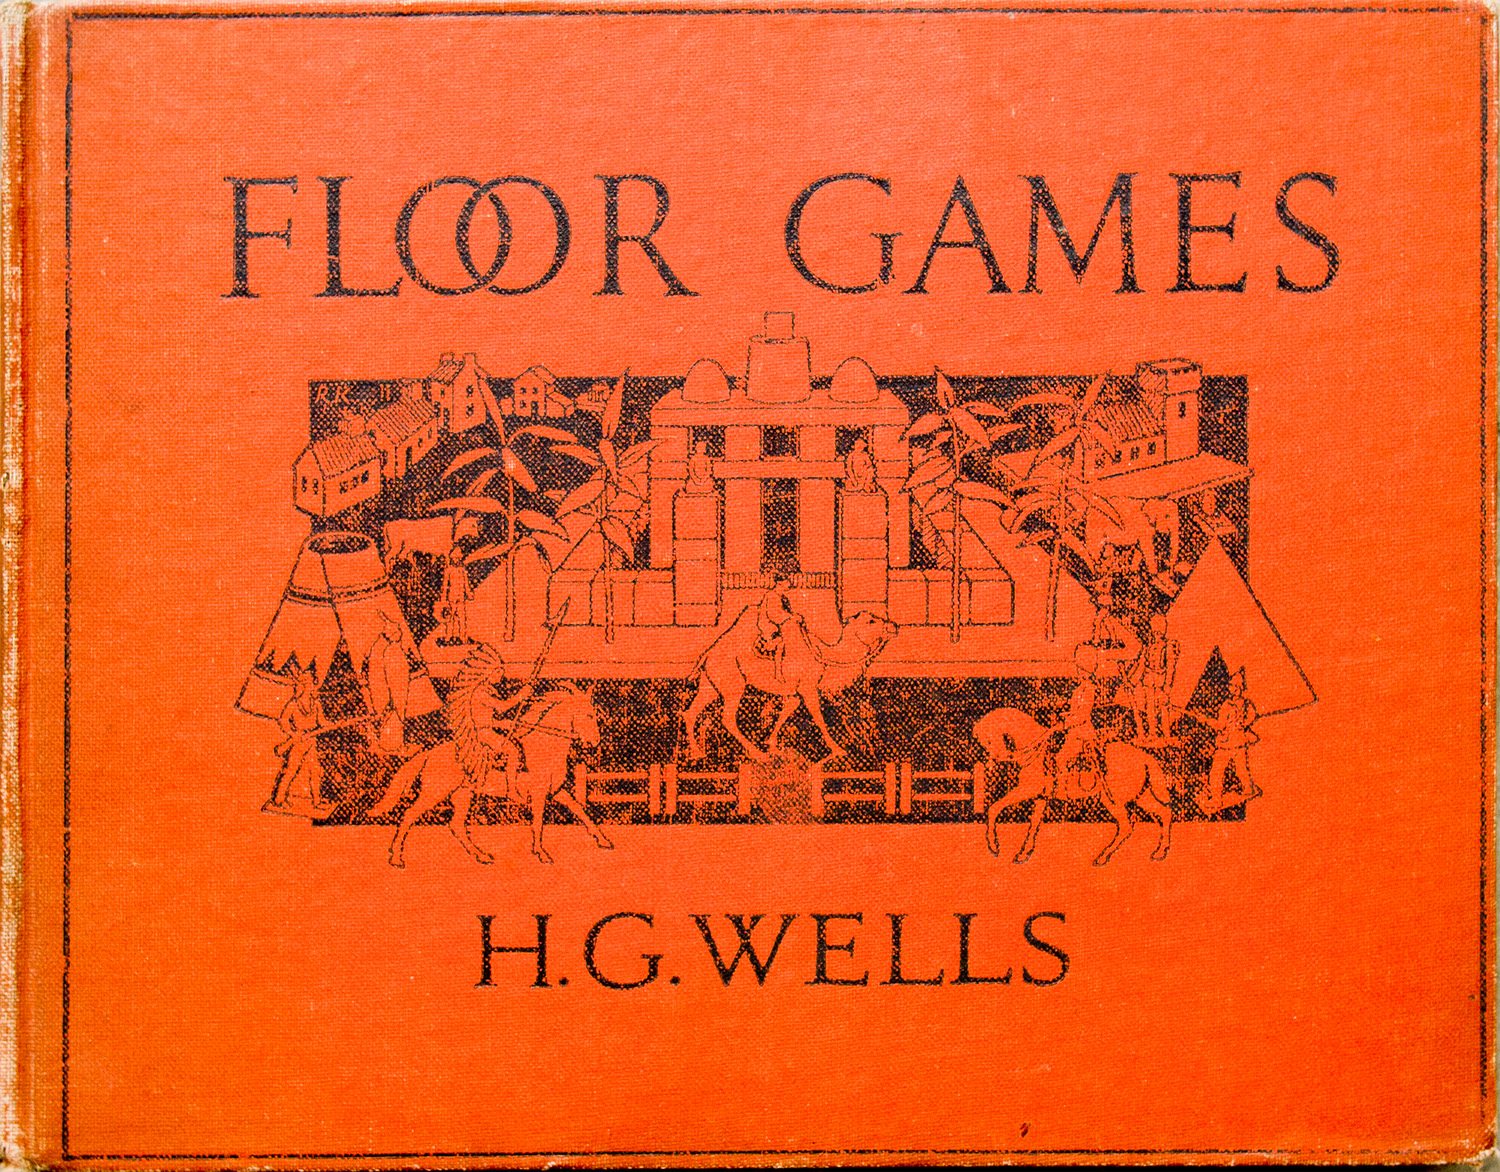 Floor Games , by H.G. Wells, published by J.M. Dent and Sons, London 1931 (first published in 1913),84 pages.